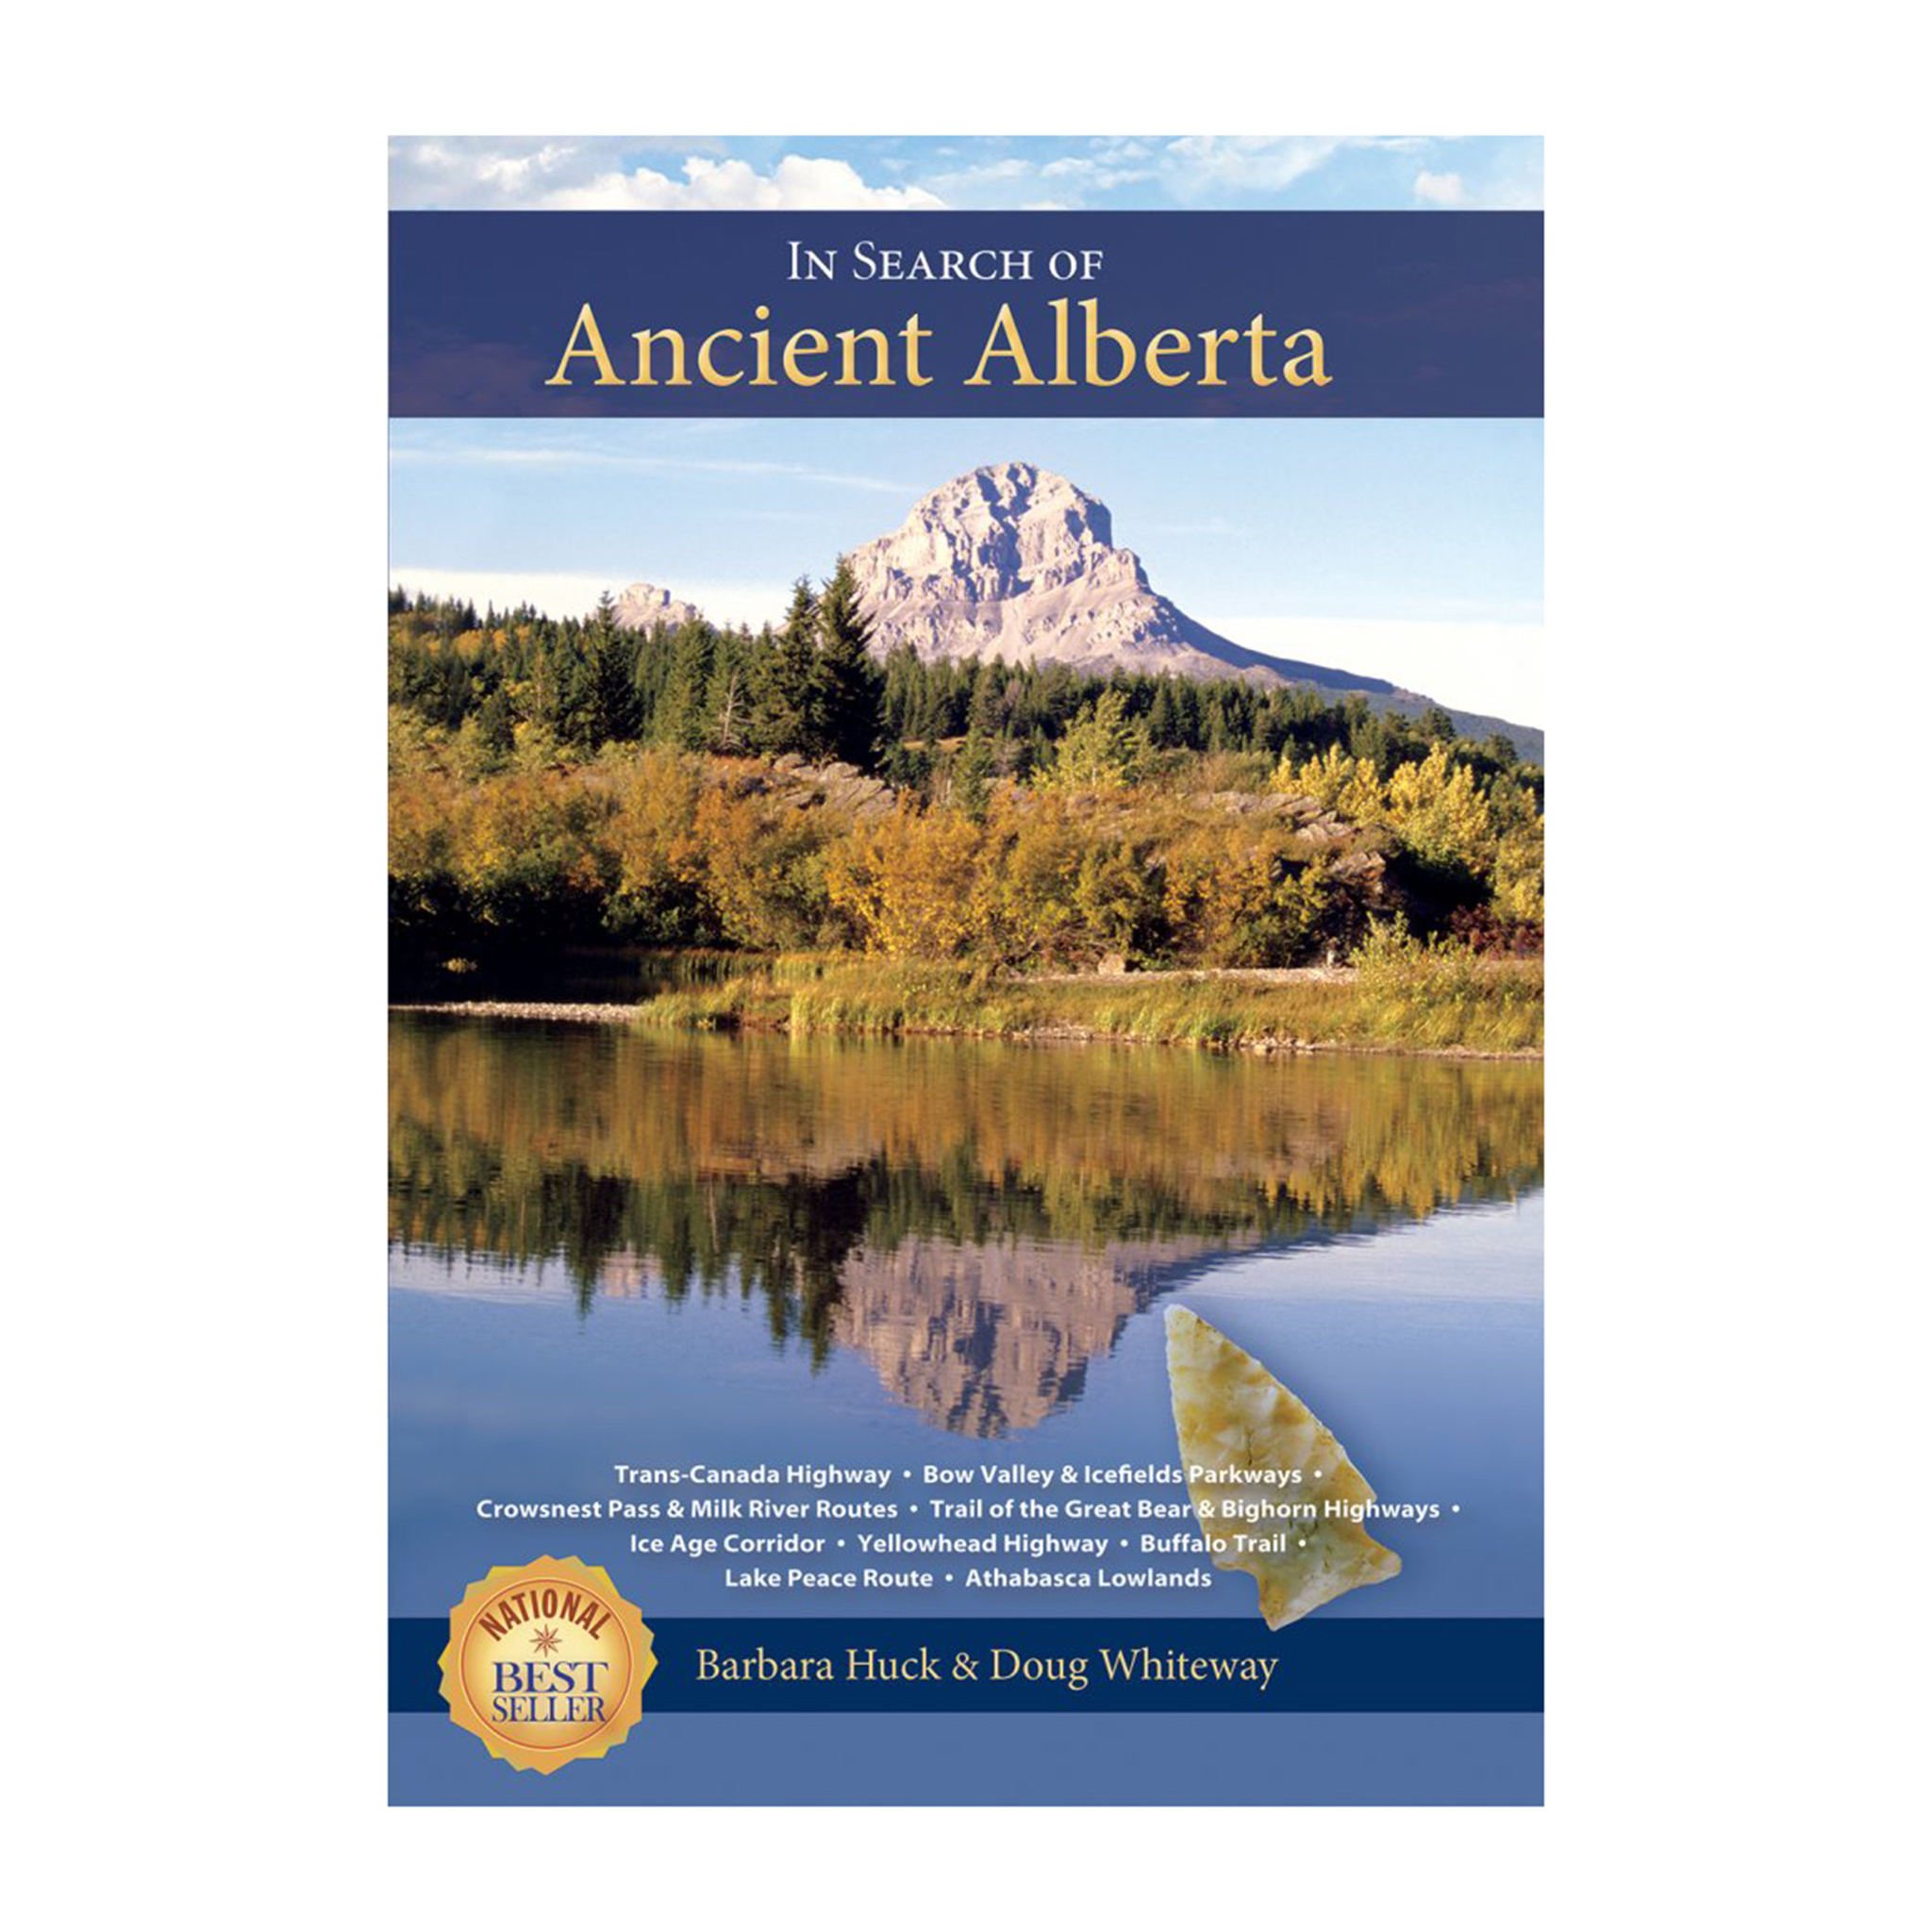 In Search of Ancient Alberta